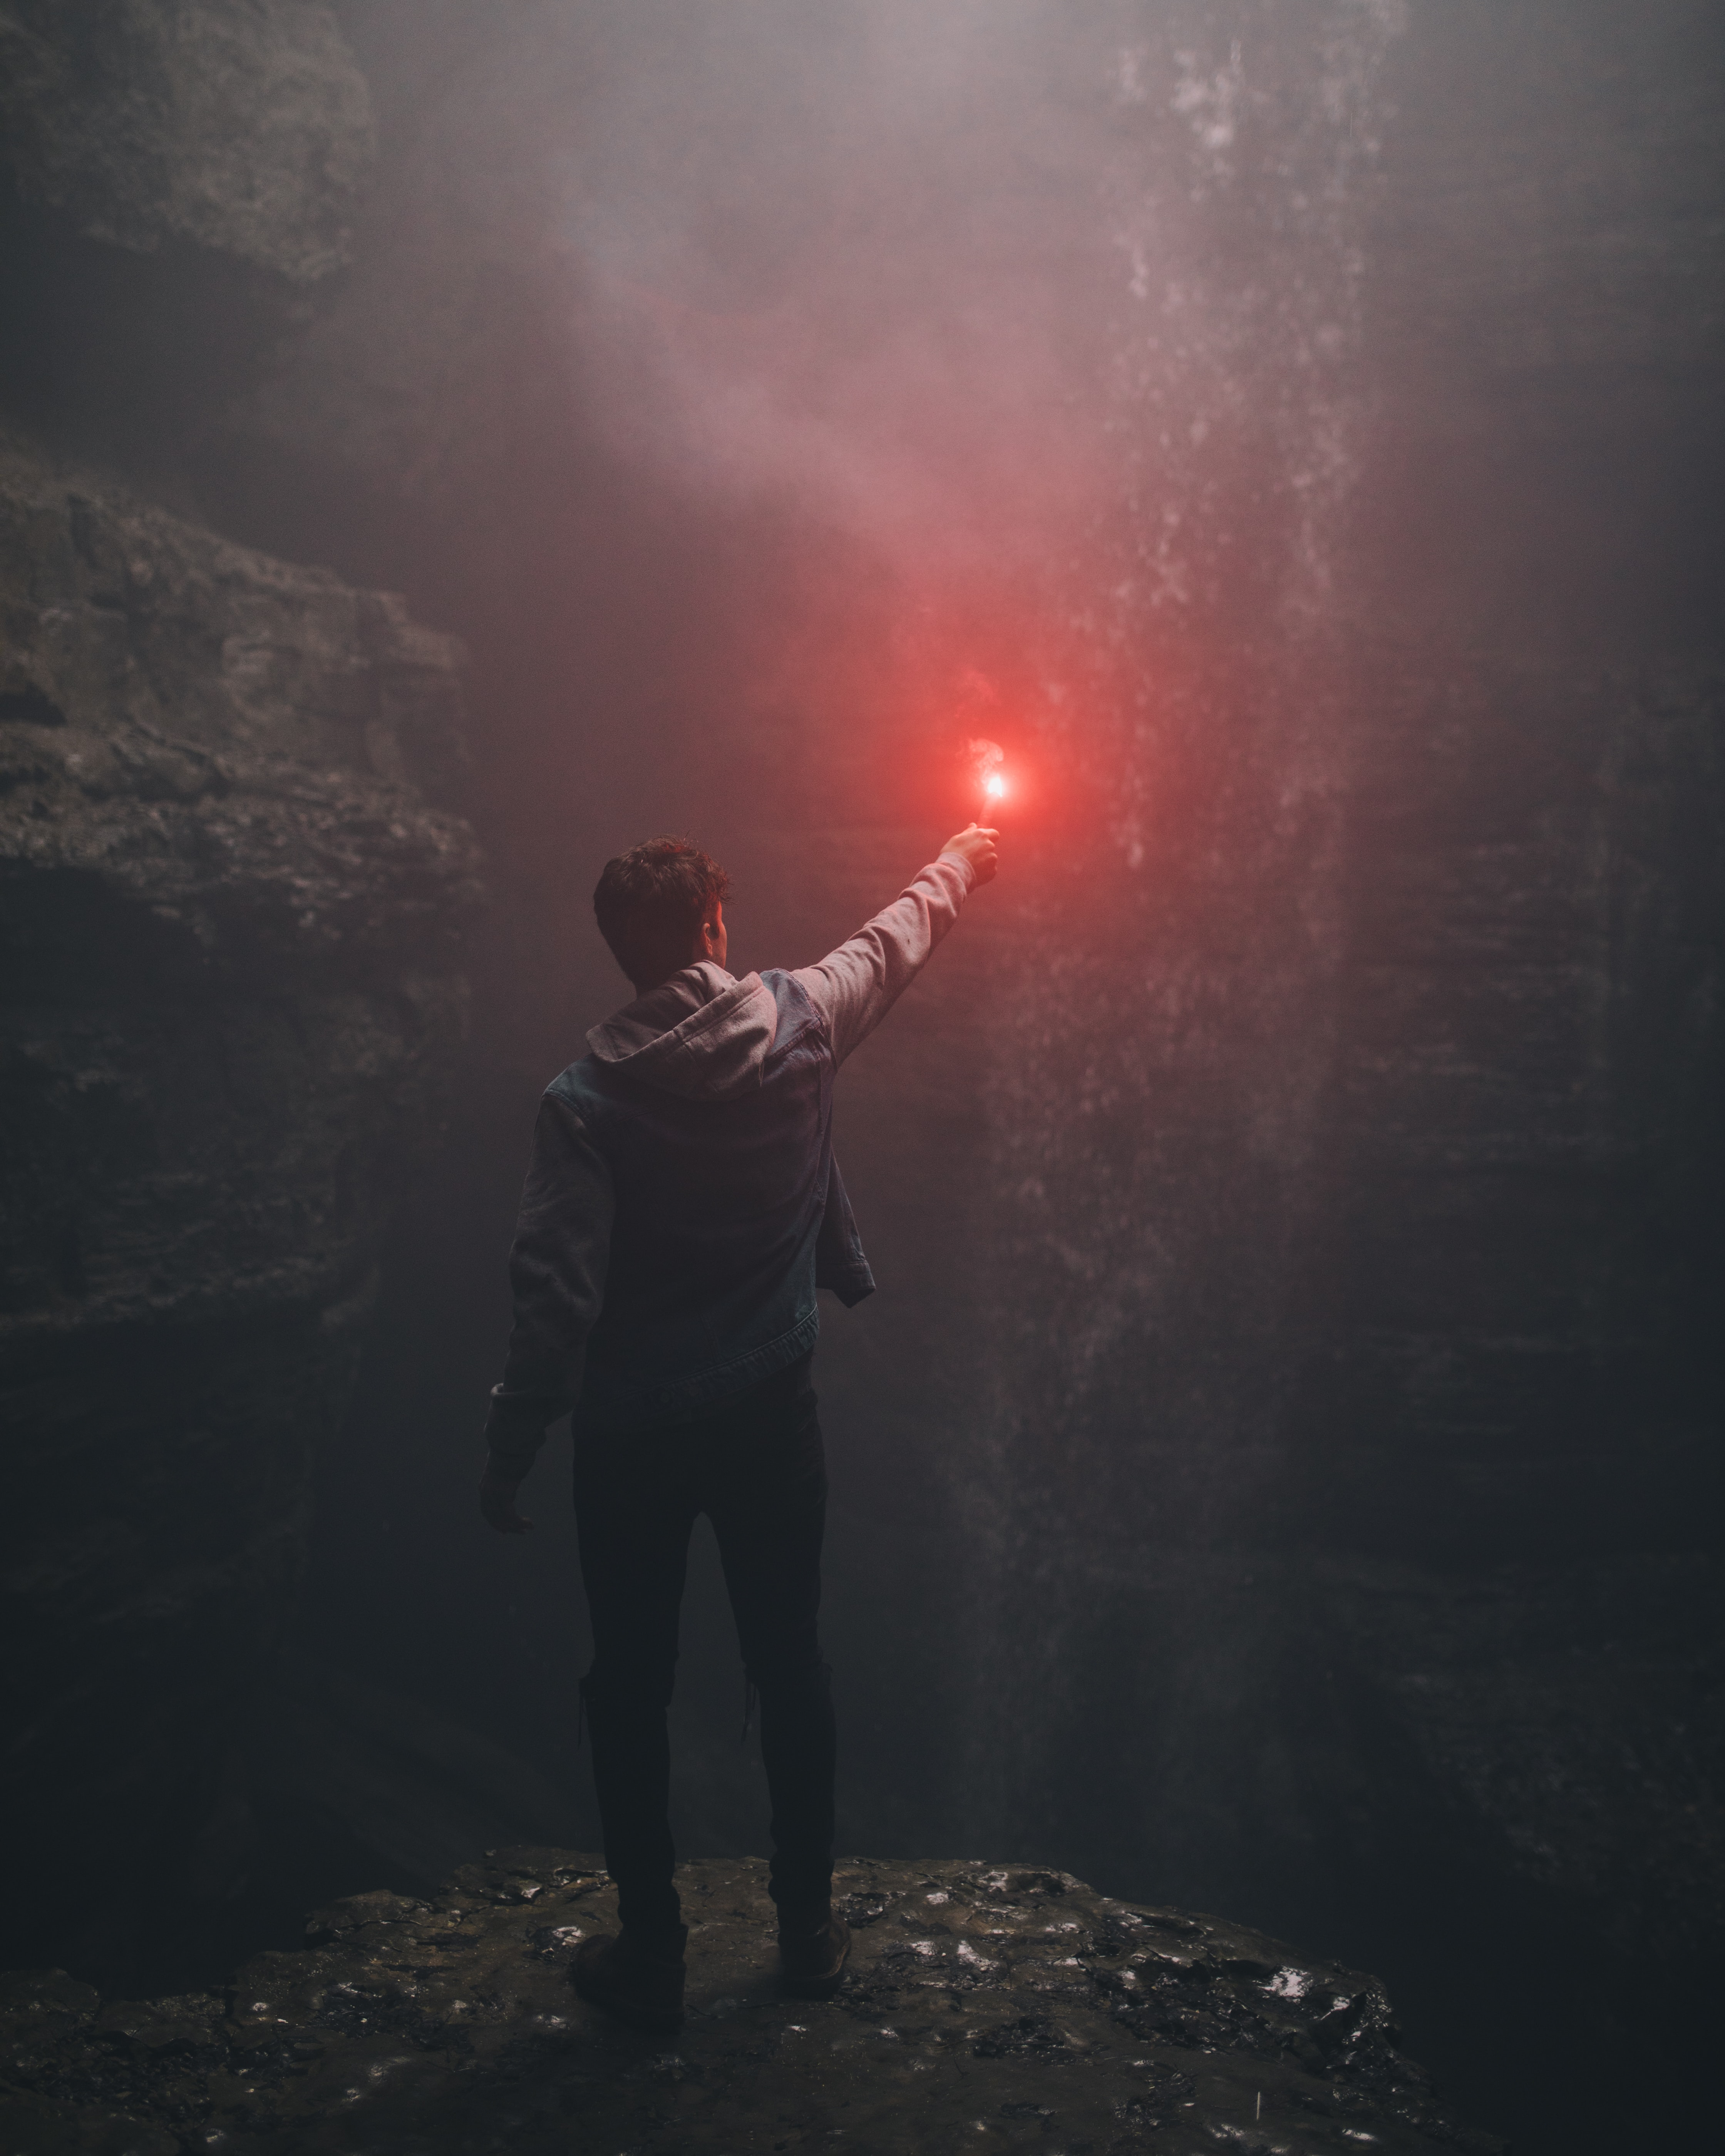 man lighting up flare in cave